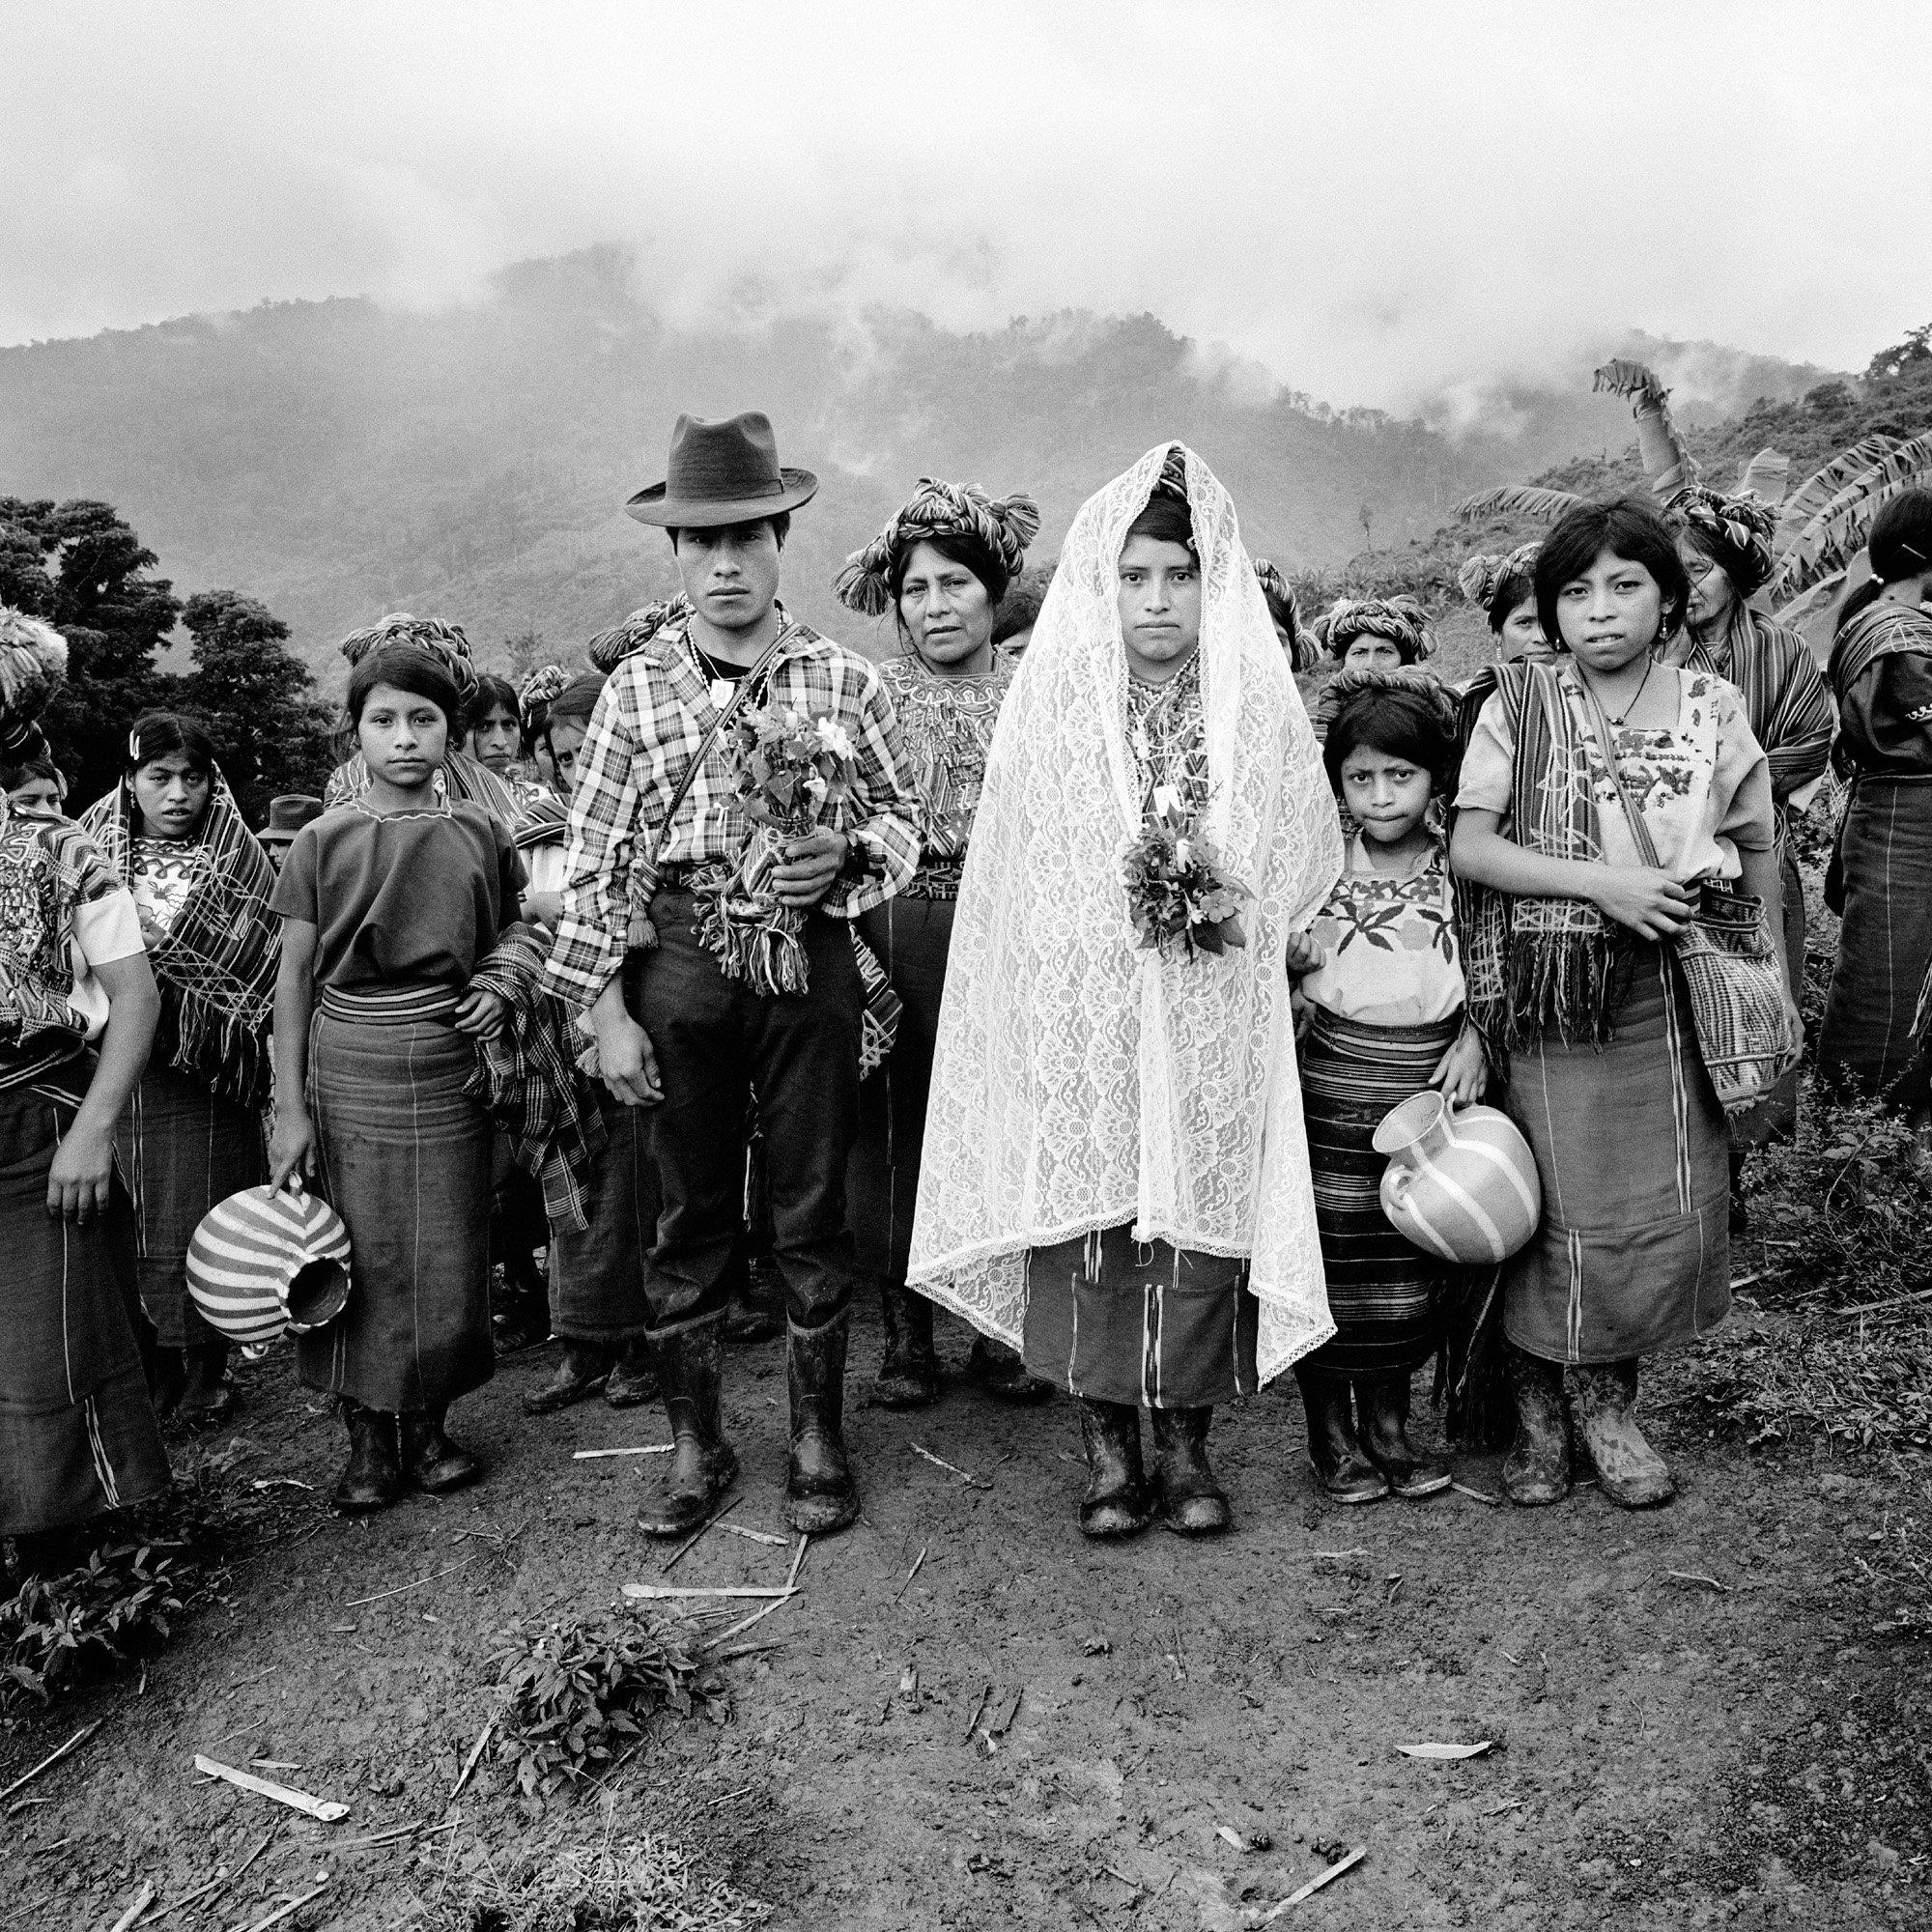 black and white portrait of a wedding in Guatemala